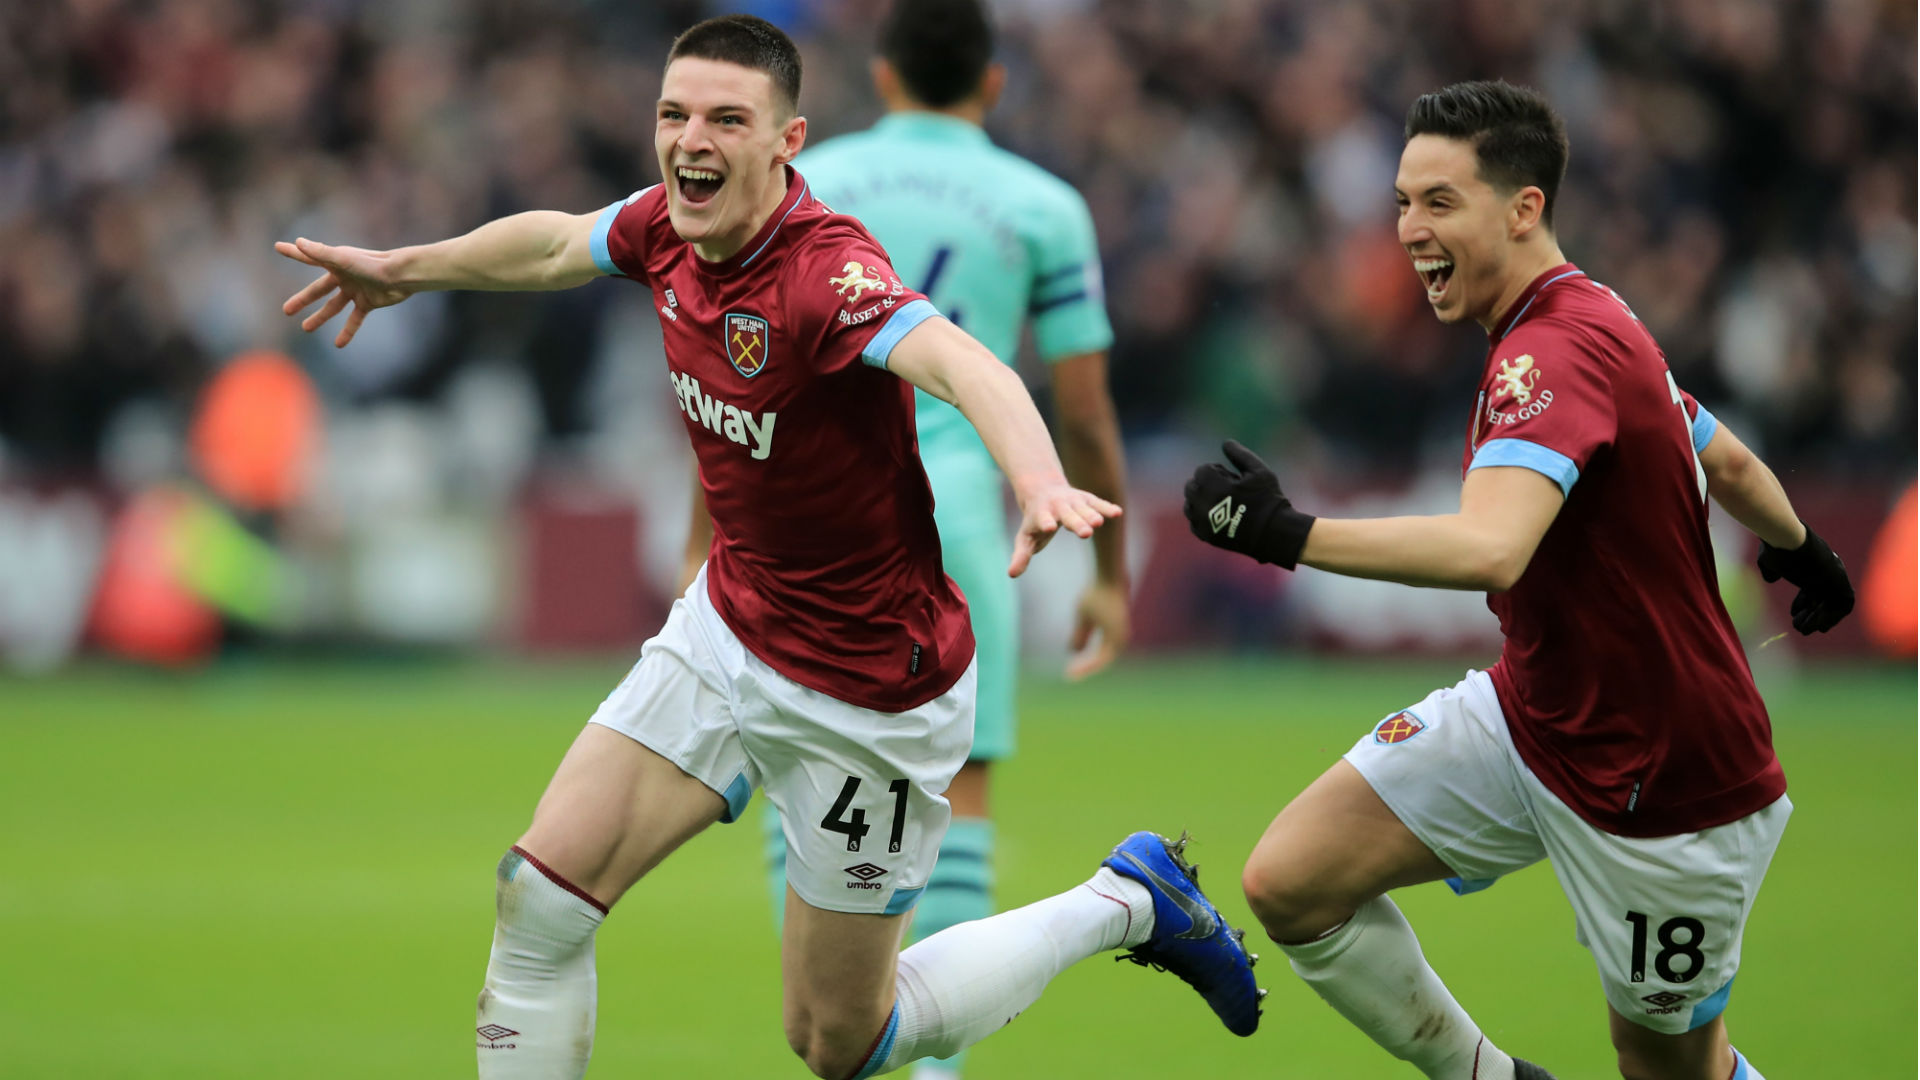 Declan Rice netted the winner as West Ham beat Arsenal in the Premier League, with Samir Nasri impressing on his league debut.